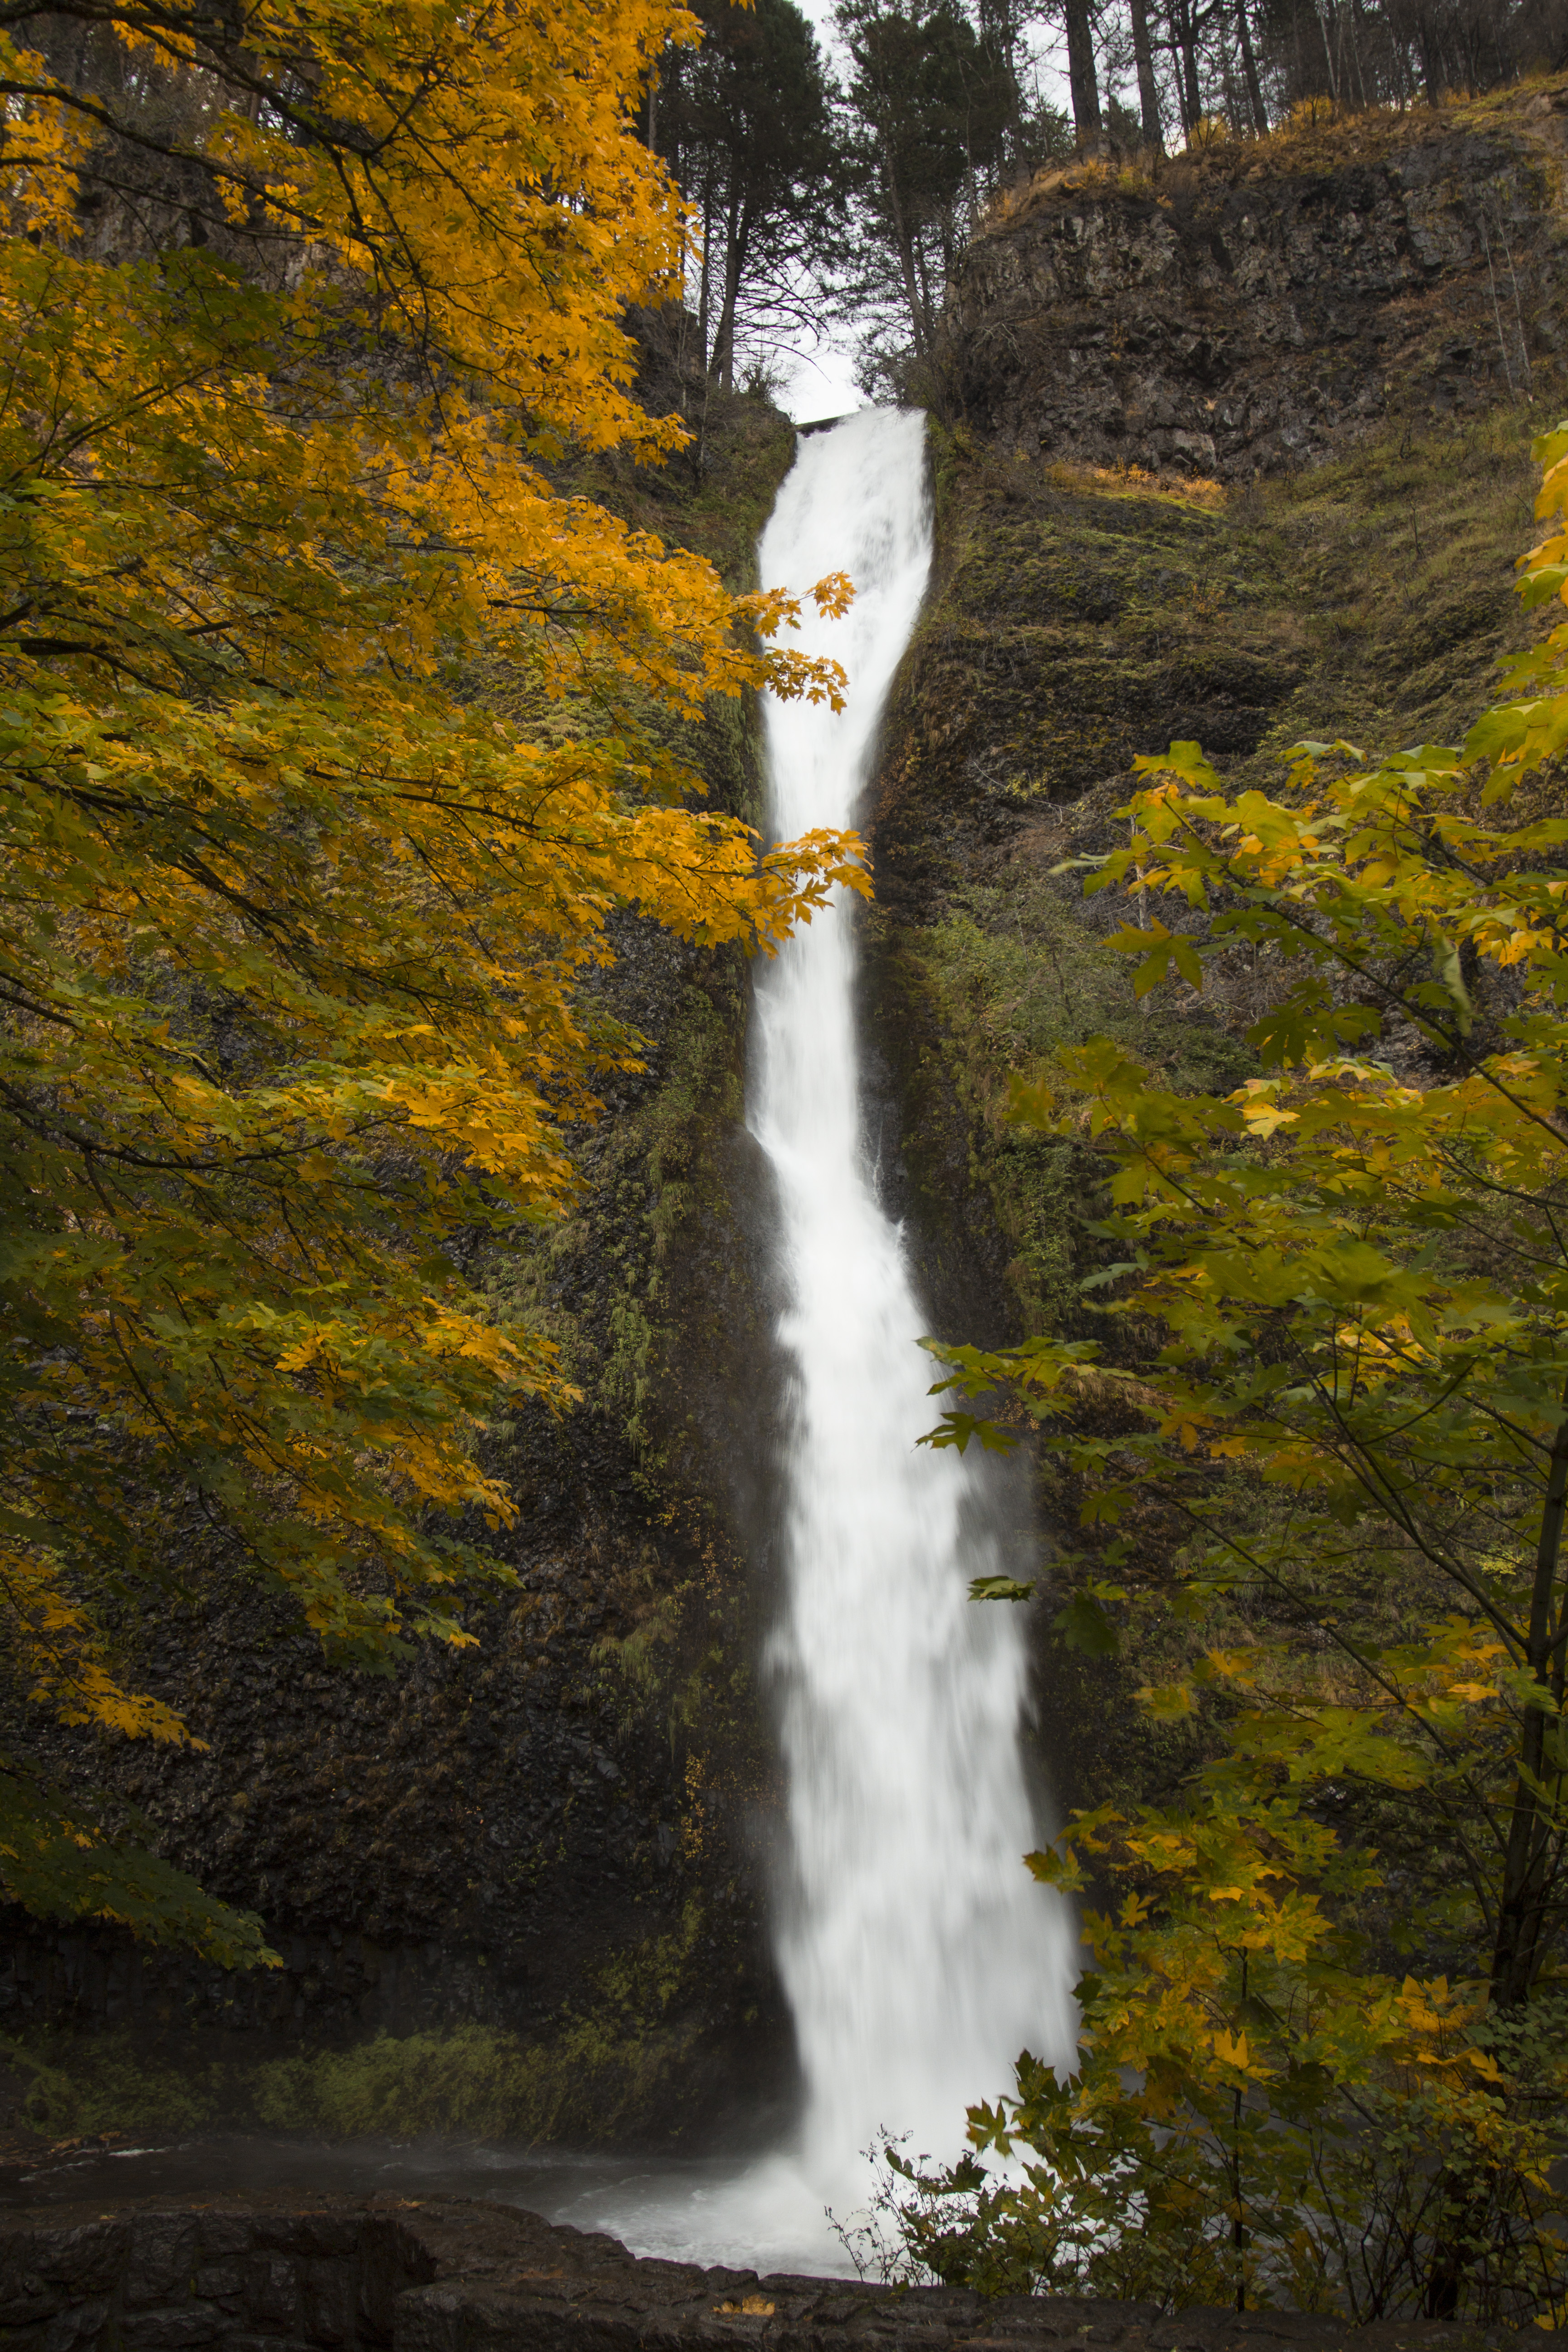 141840 download wallpaper Nature, Waterfall, Slope, Autumn screensavers and pictures for free